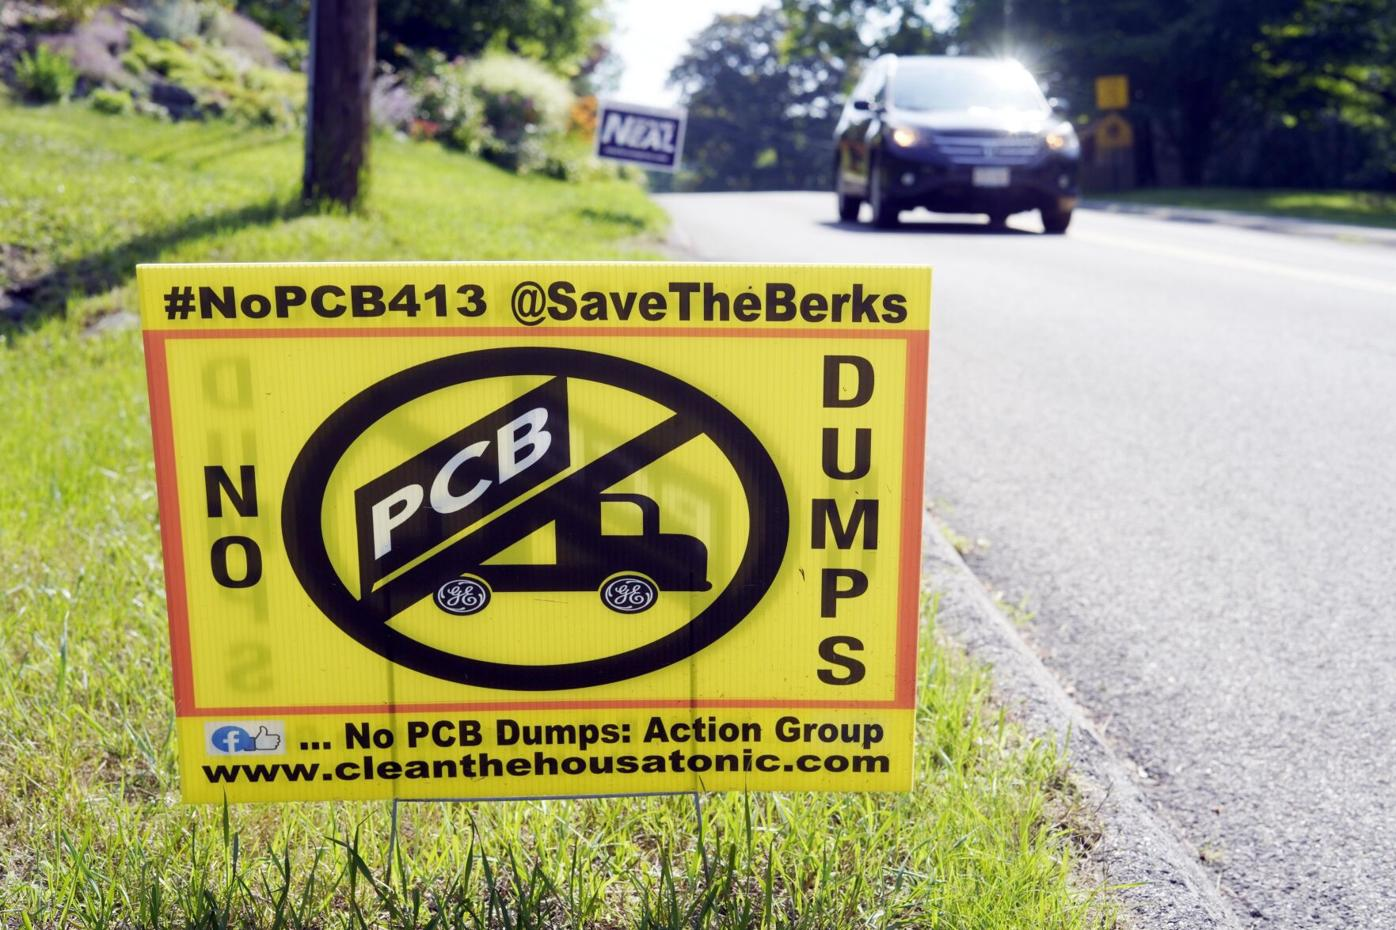 A lawn sign opposing a PCB dump site